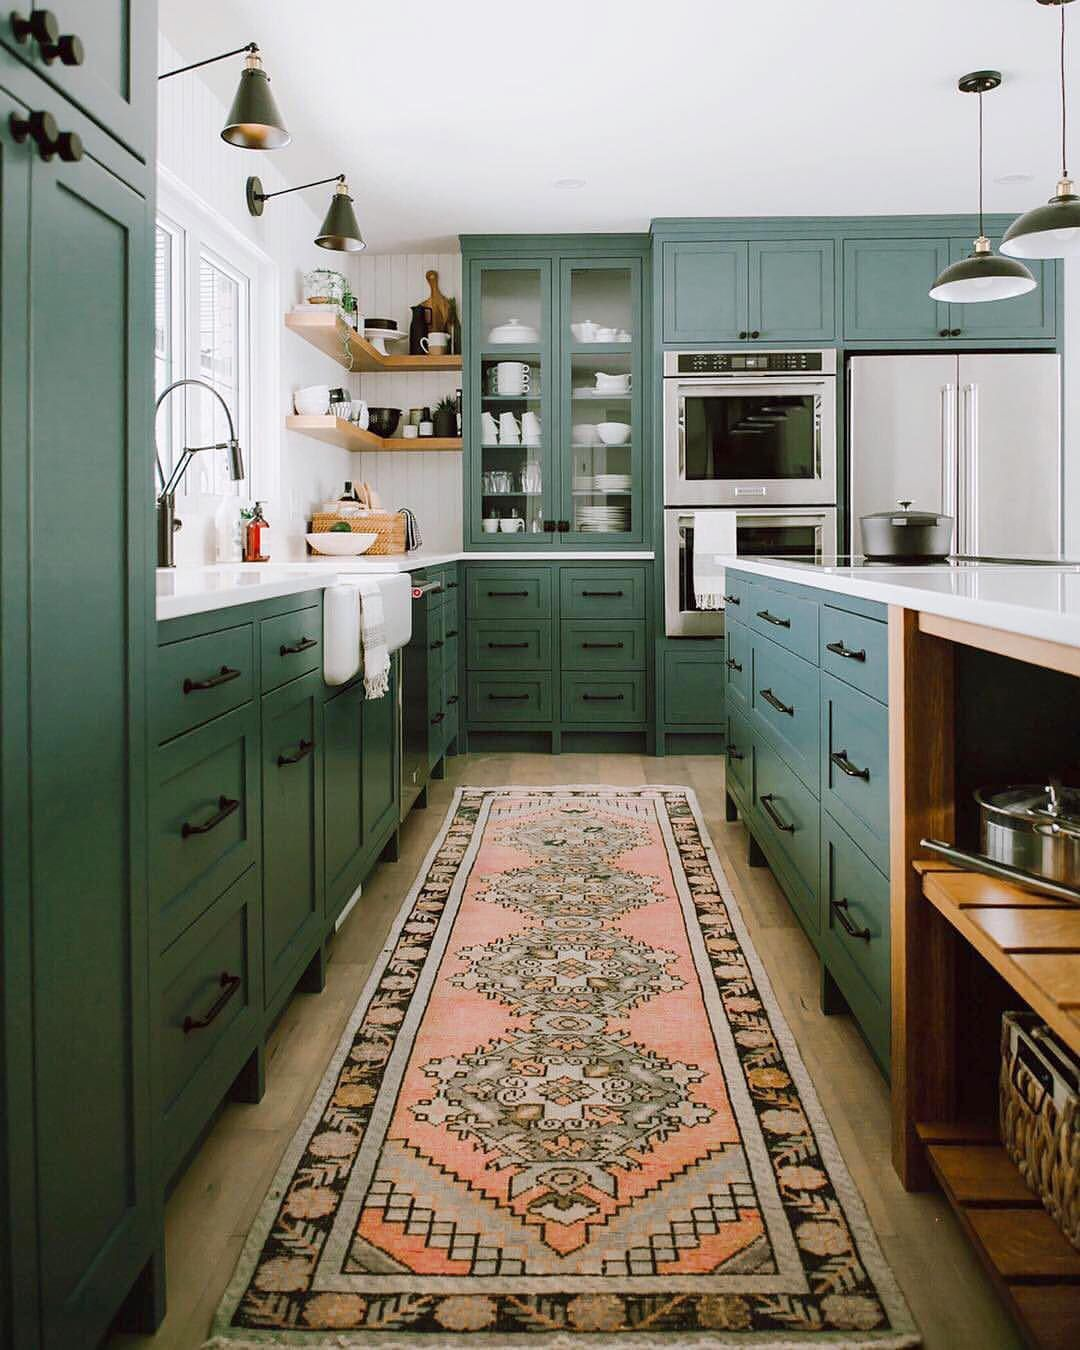 Kitchen Remodel 101 Stunning Ideas For Your Kitchen Design: Take Your Kitchen To The Next Level By Painting Your